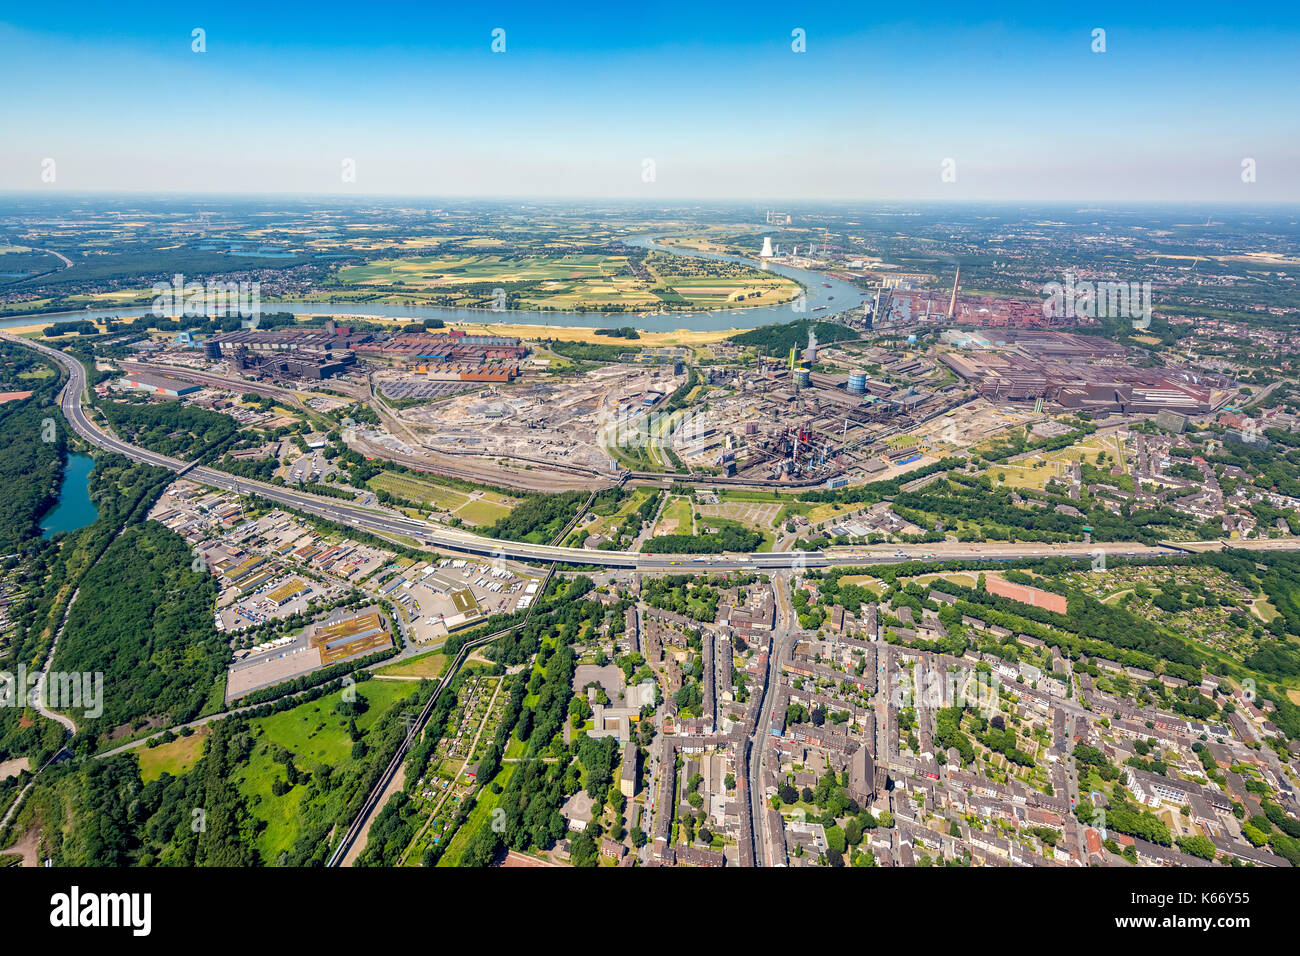 ThyssenKrupp Steel Europe AG, steelworks Bruckhausen, coal and steel industry, heavy industry, Duisburg, Ruhr, Nordrhein-Westfalen, Germany, Duisburg, - Stock Image